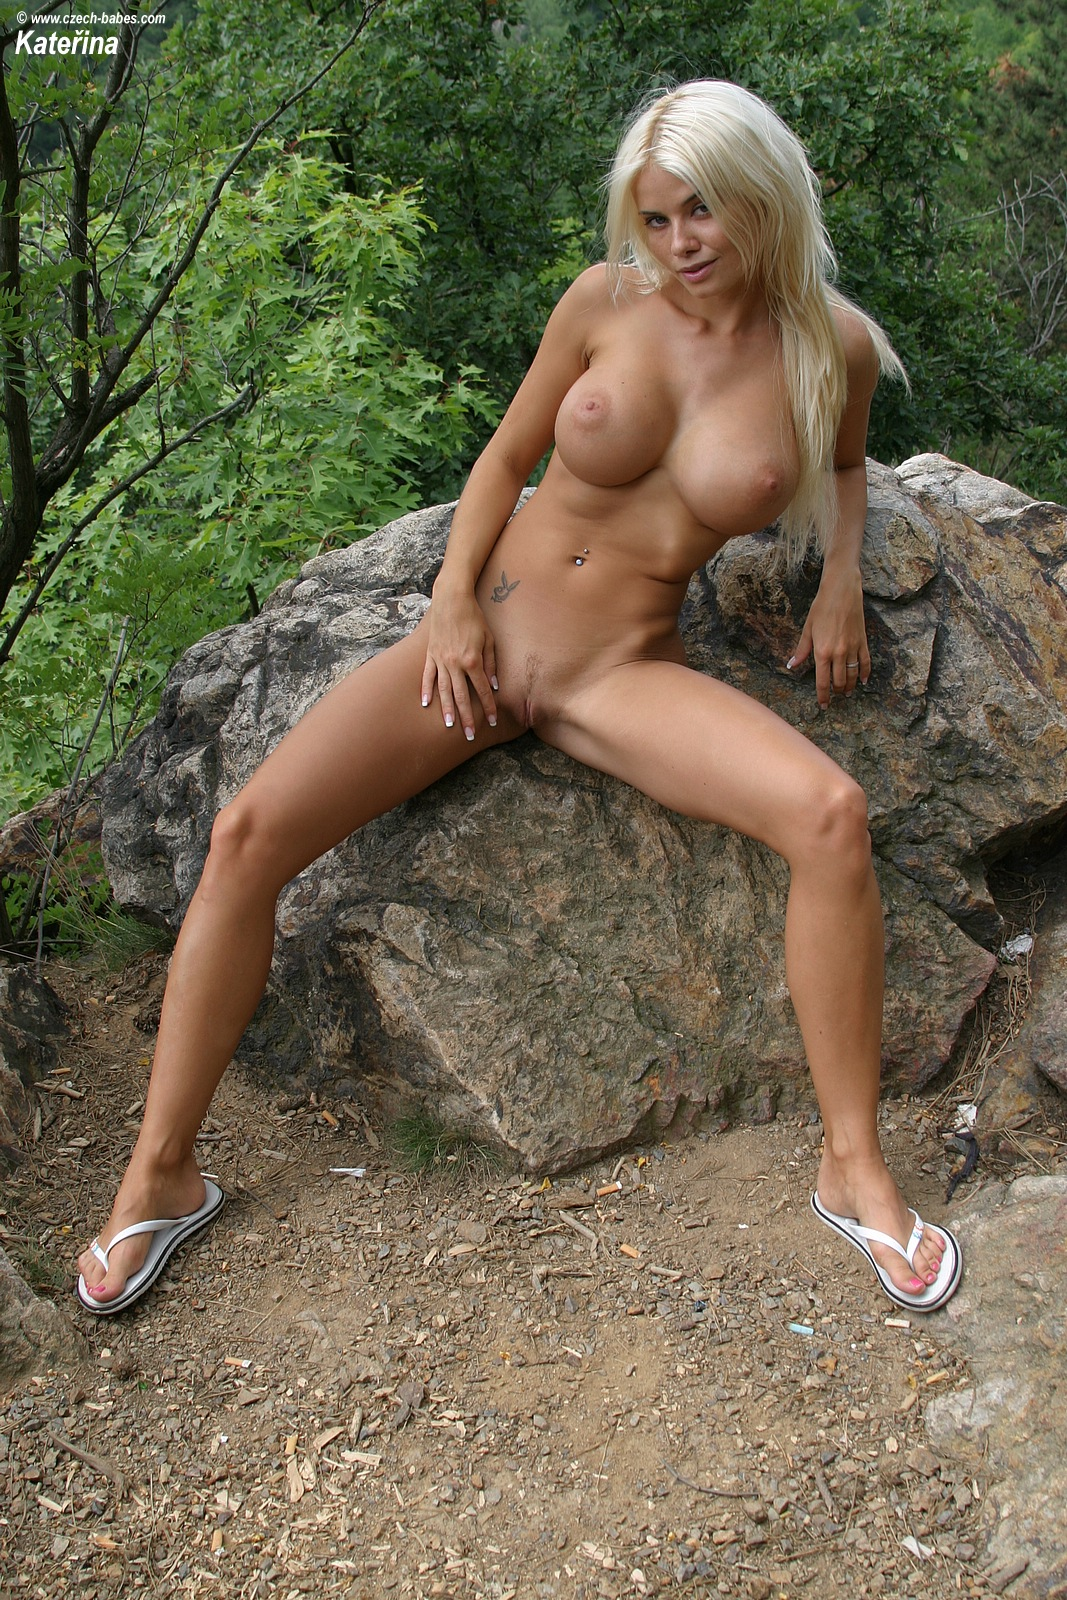 katerina-nude-mountain-lingerie-huge-tits-blonde-17